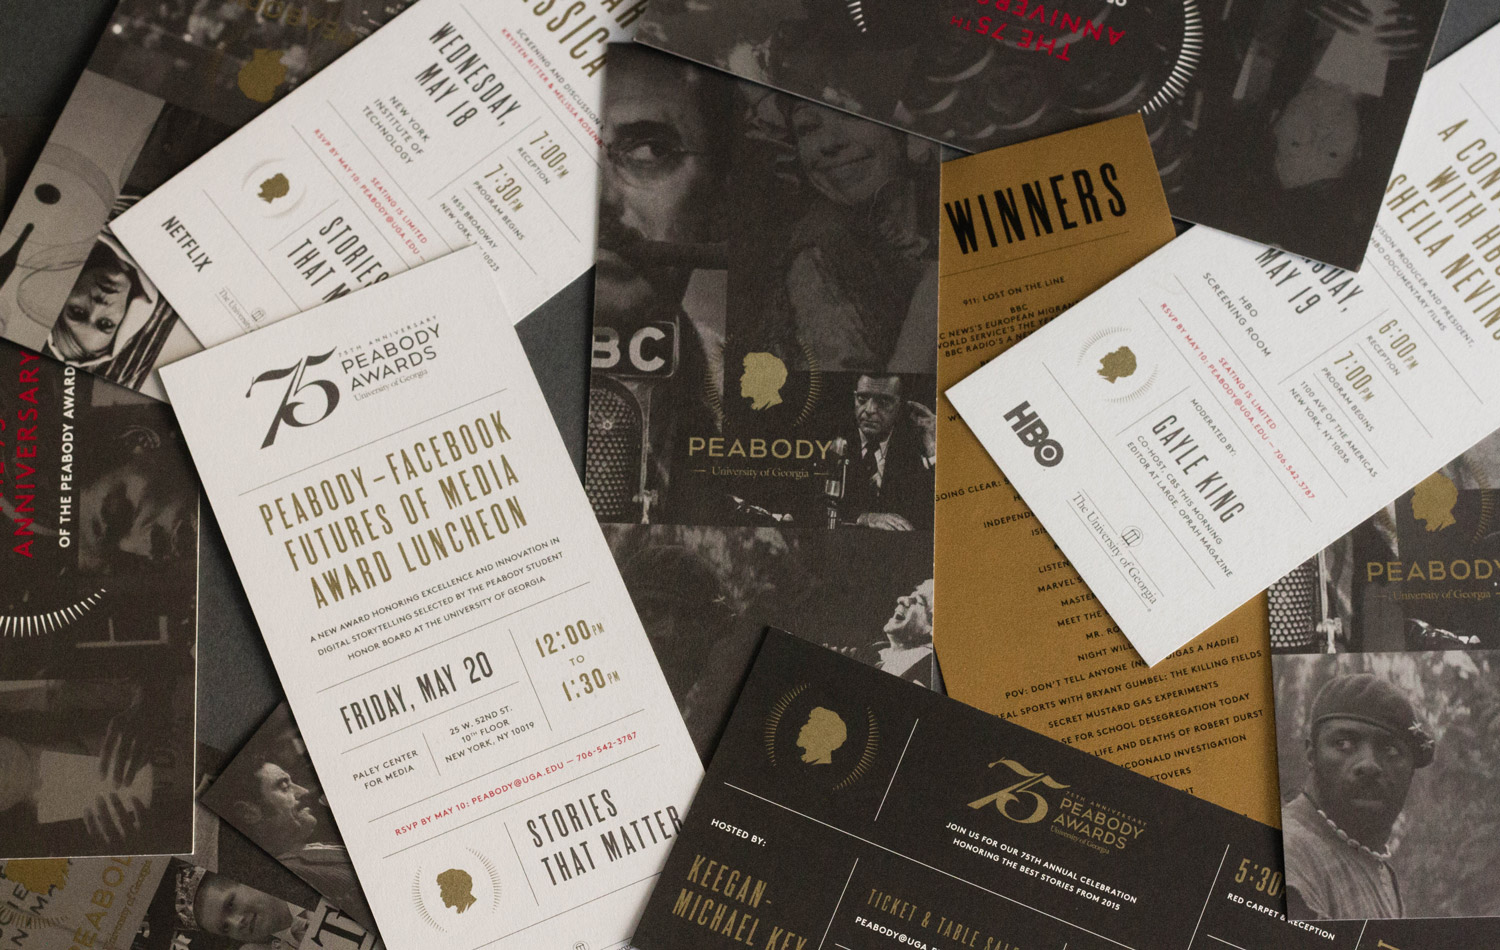 Group of the invitations to show the Peabody Awards design system in action